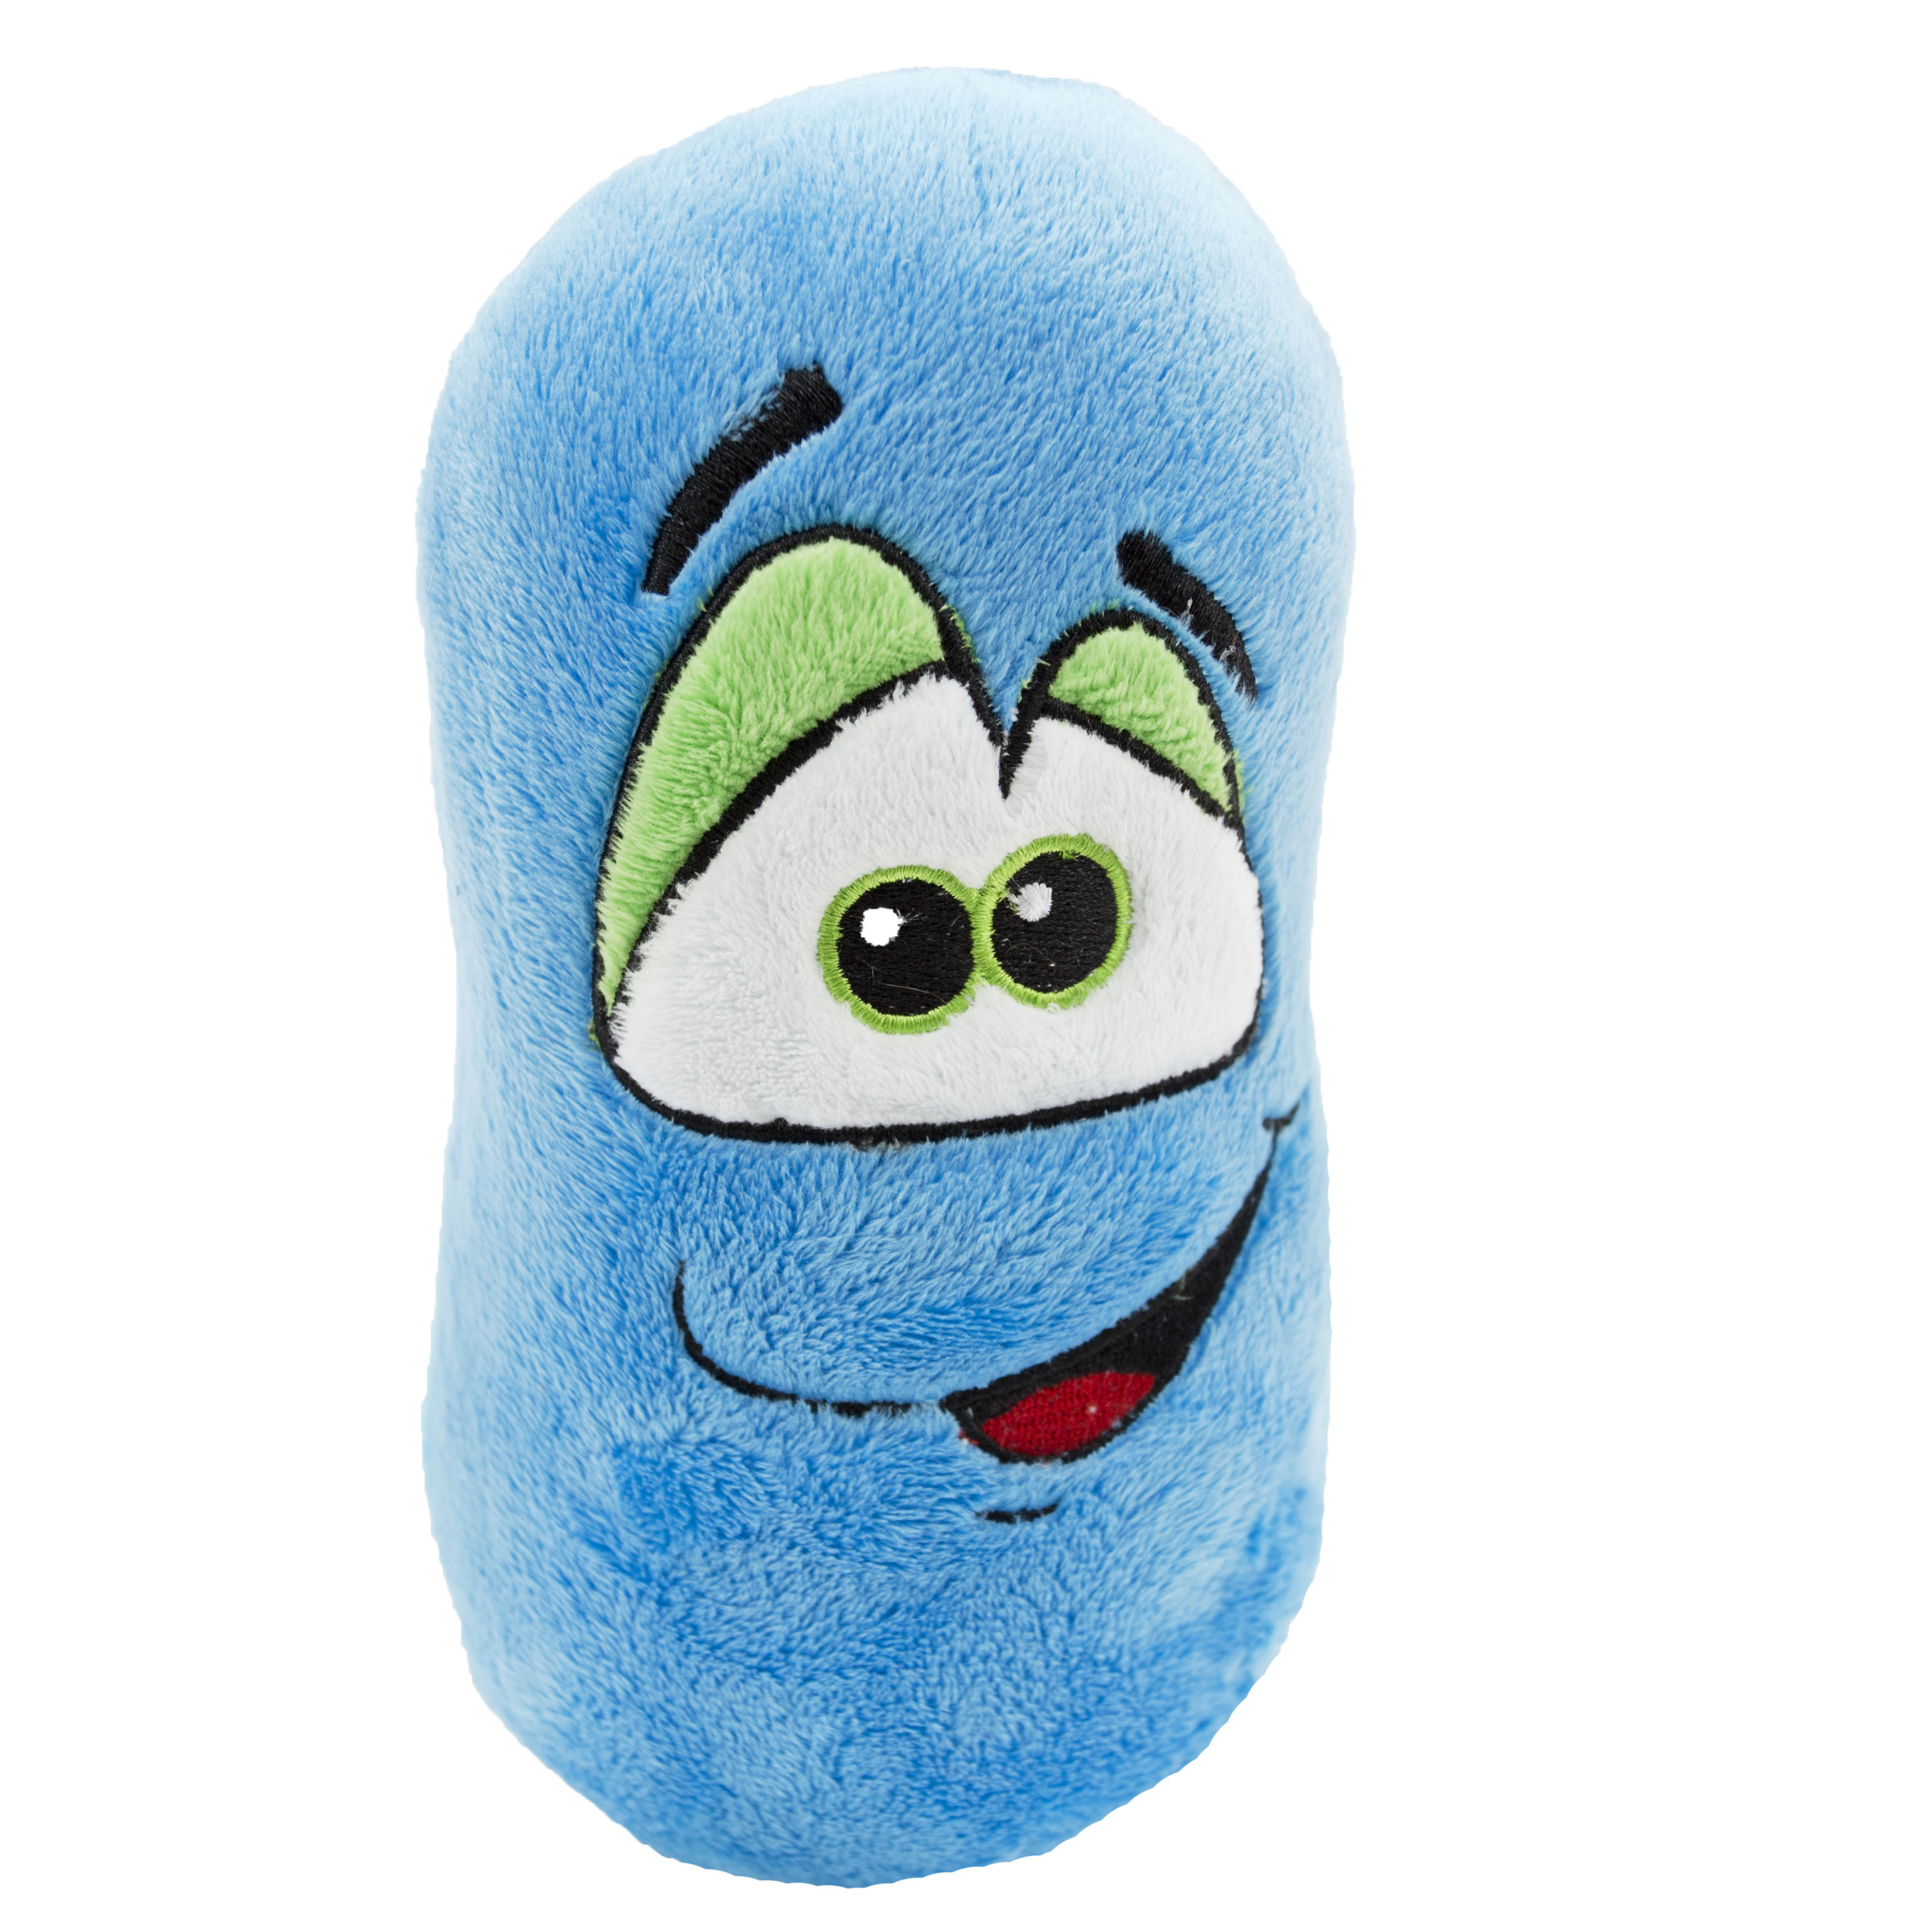 7-inch Musical Potato Plush Toy - Blue Potato